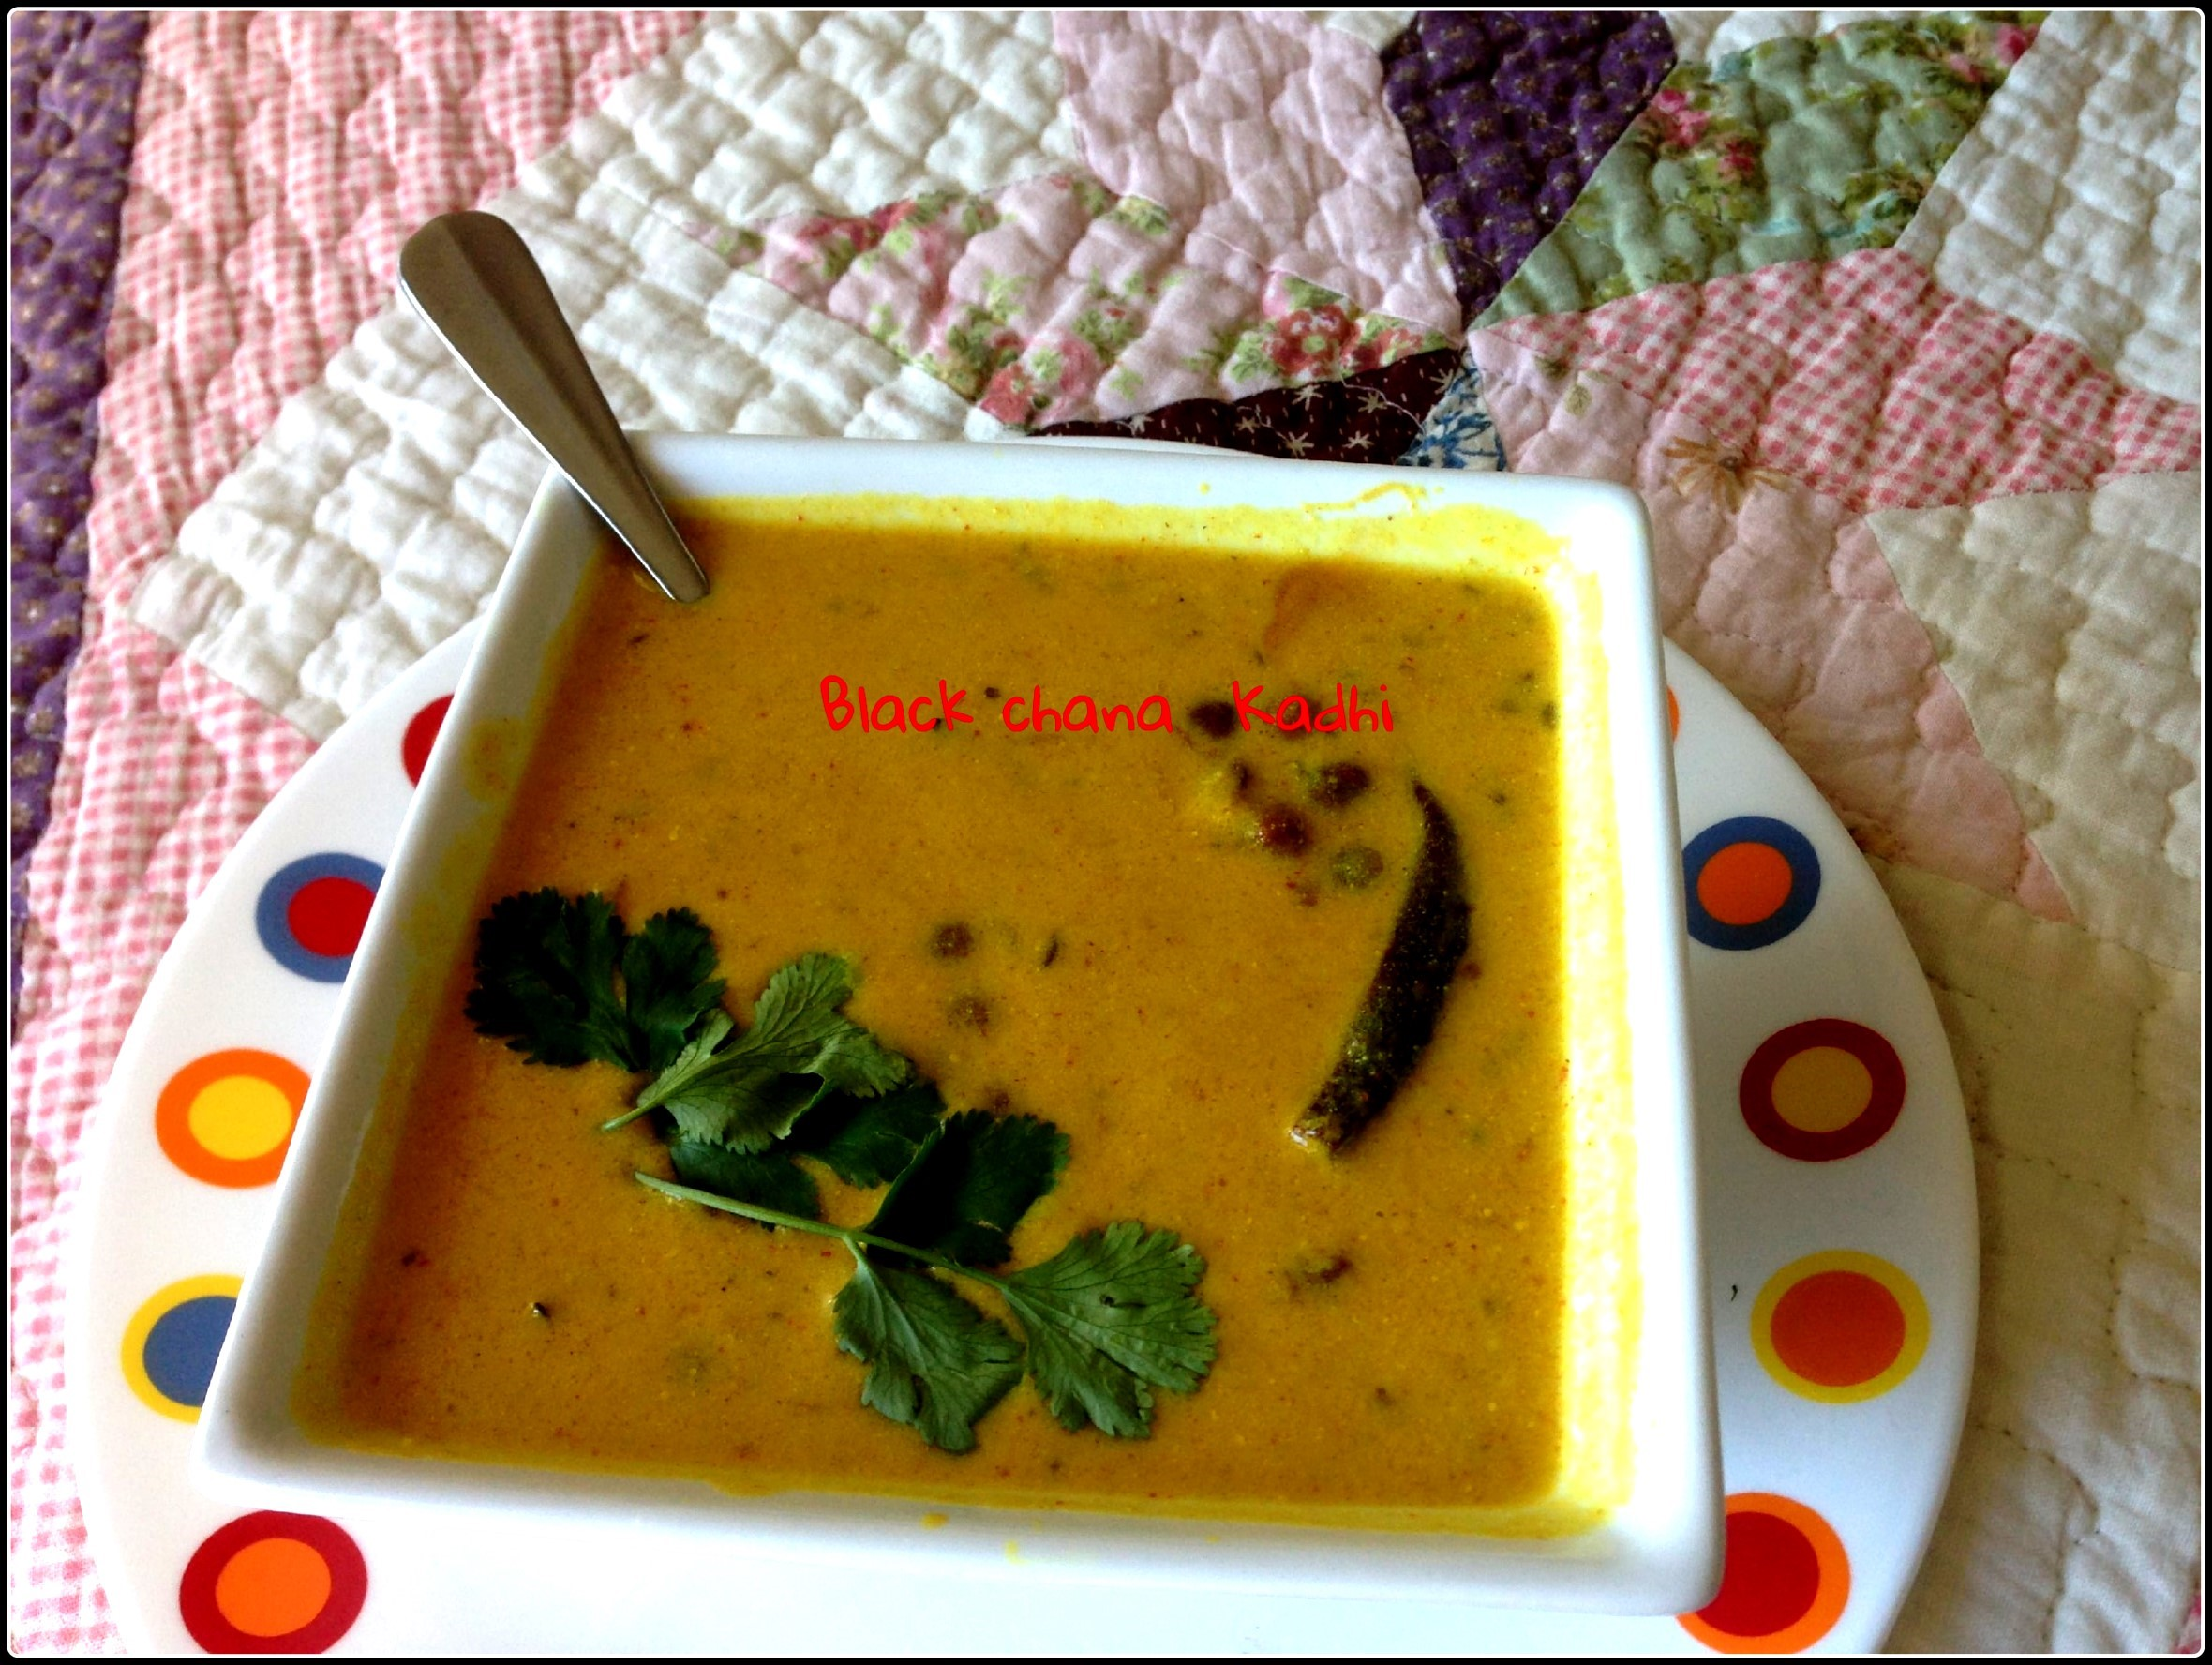 Black chana /black chickpeas Kadhi